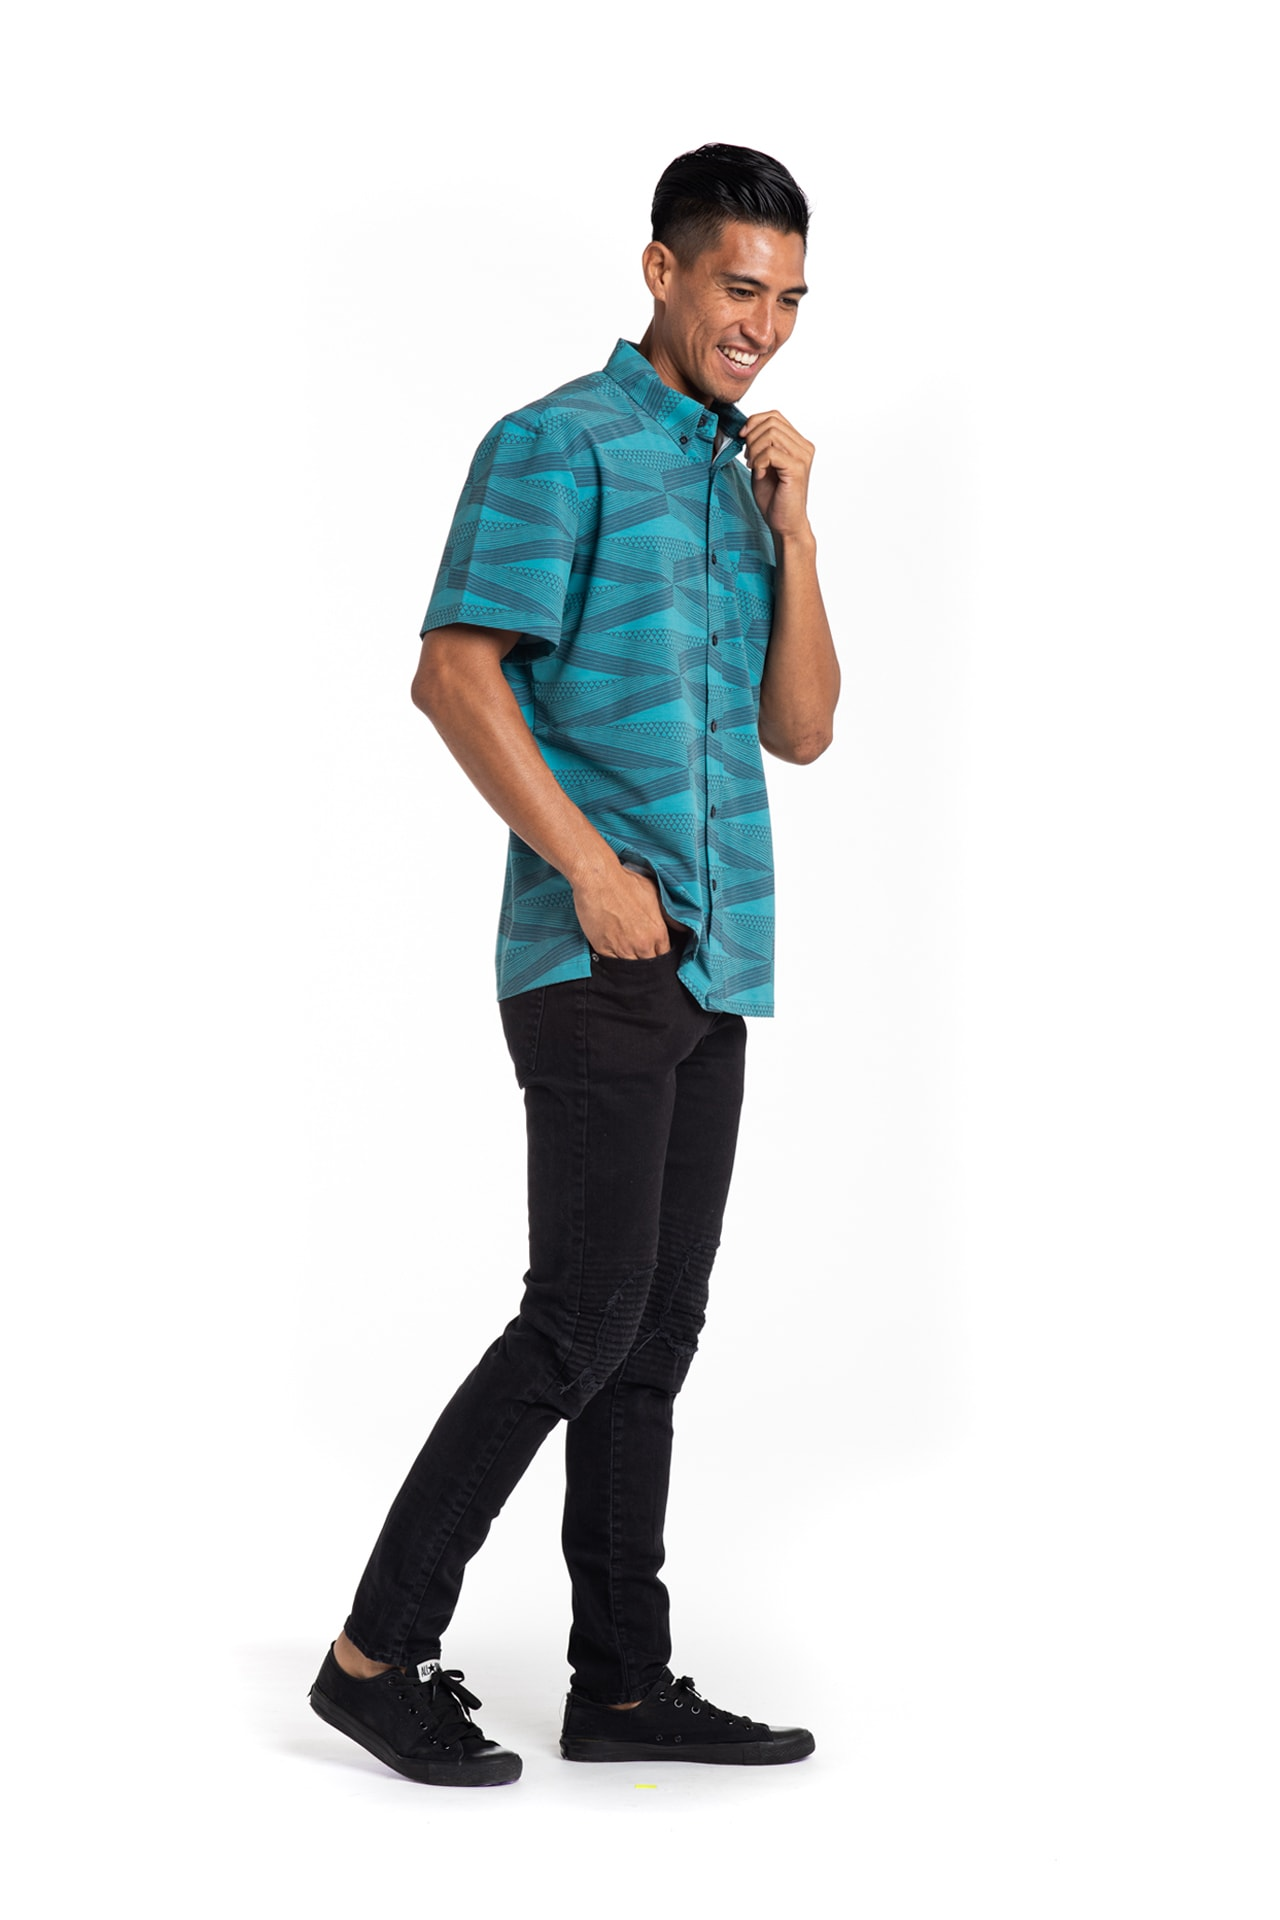 Male model wearing Mahalo Nui Shirt in Atlantic Blue - Side View